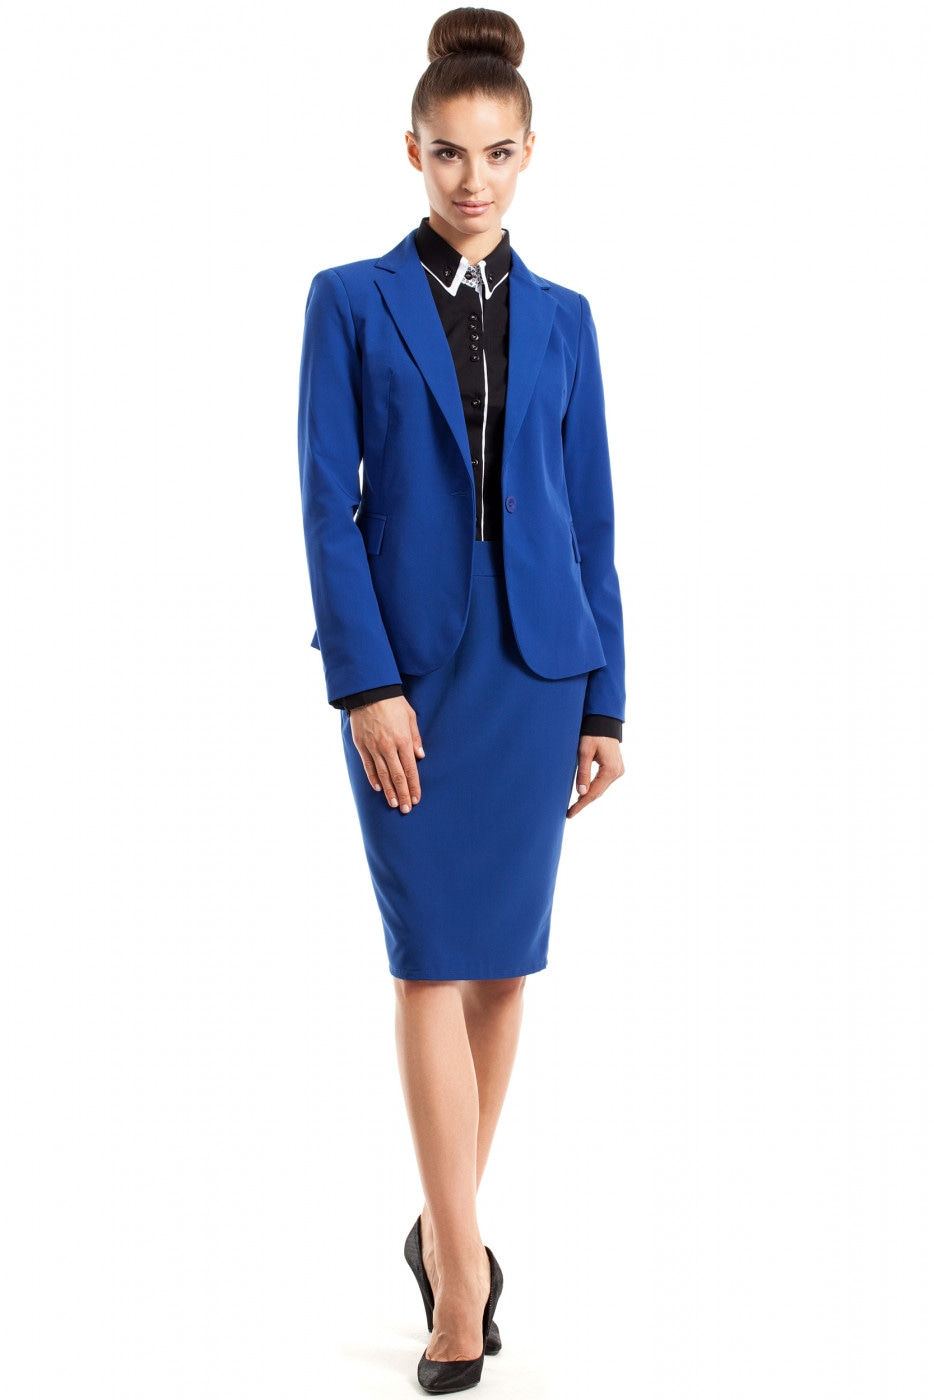 Stylove Woman's Jacket S005 Royal